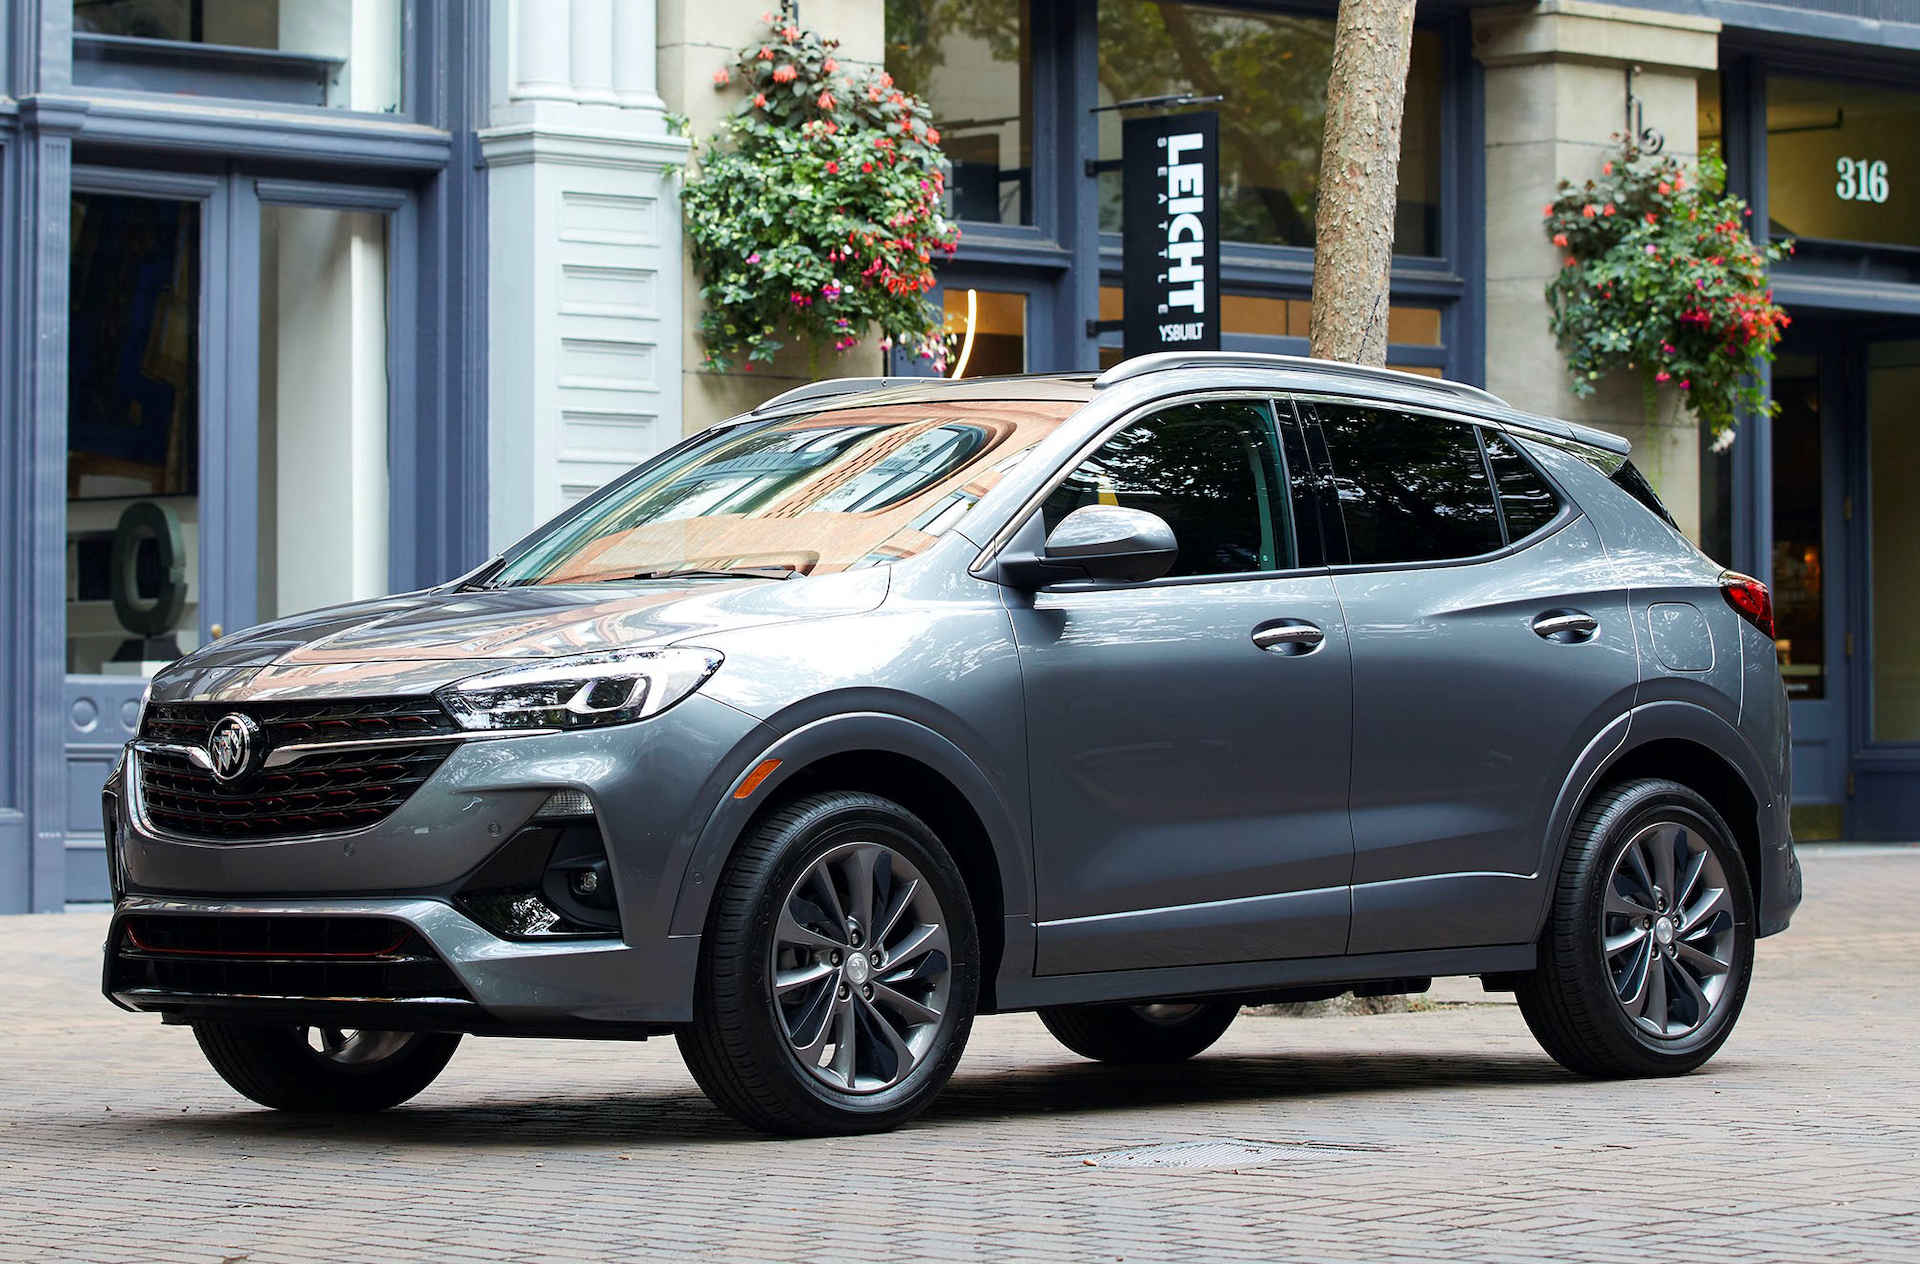 2021 Buick Encore Review, Ratings, Specs, Prices, And Photos 2021 Buick Encore Gx Test Drive, Engine, Reviews